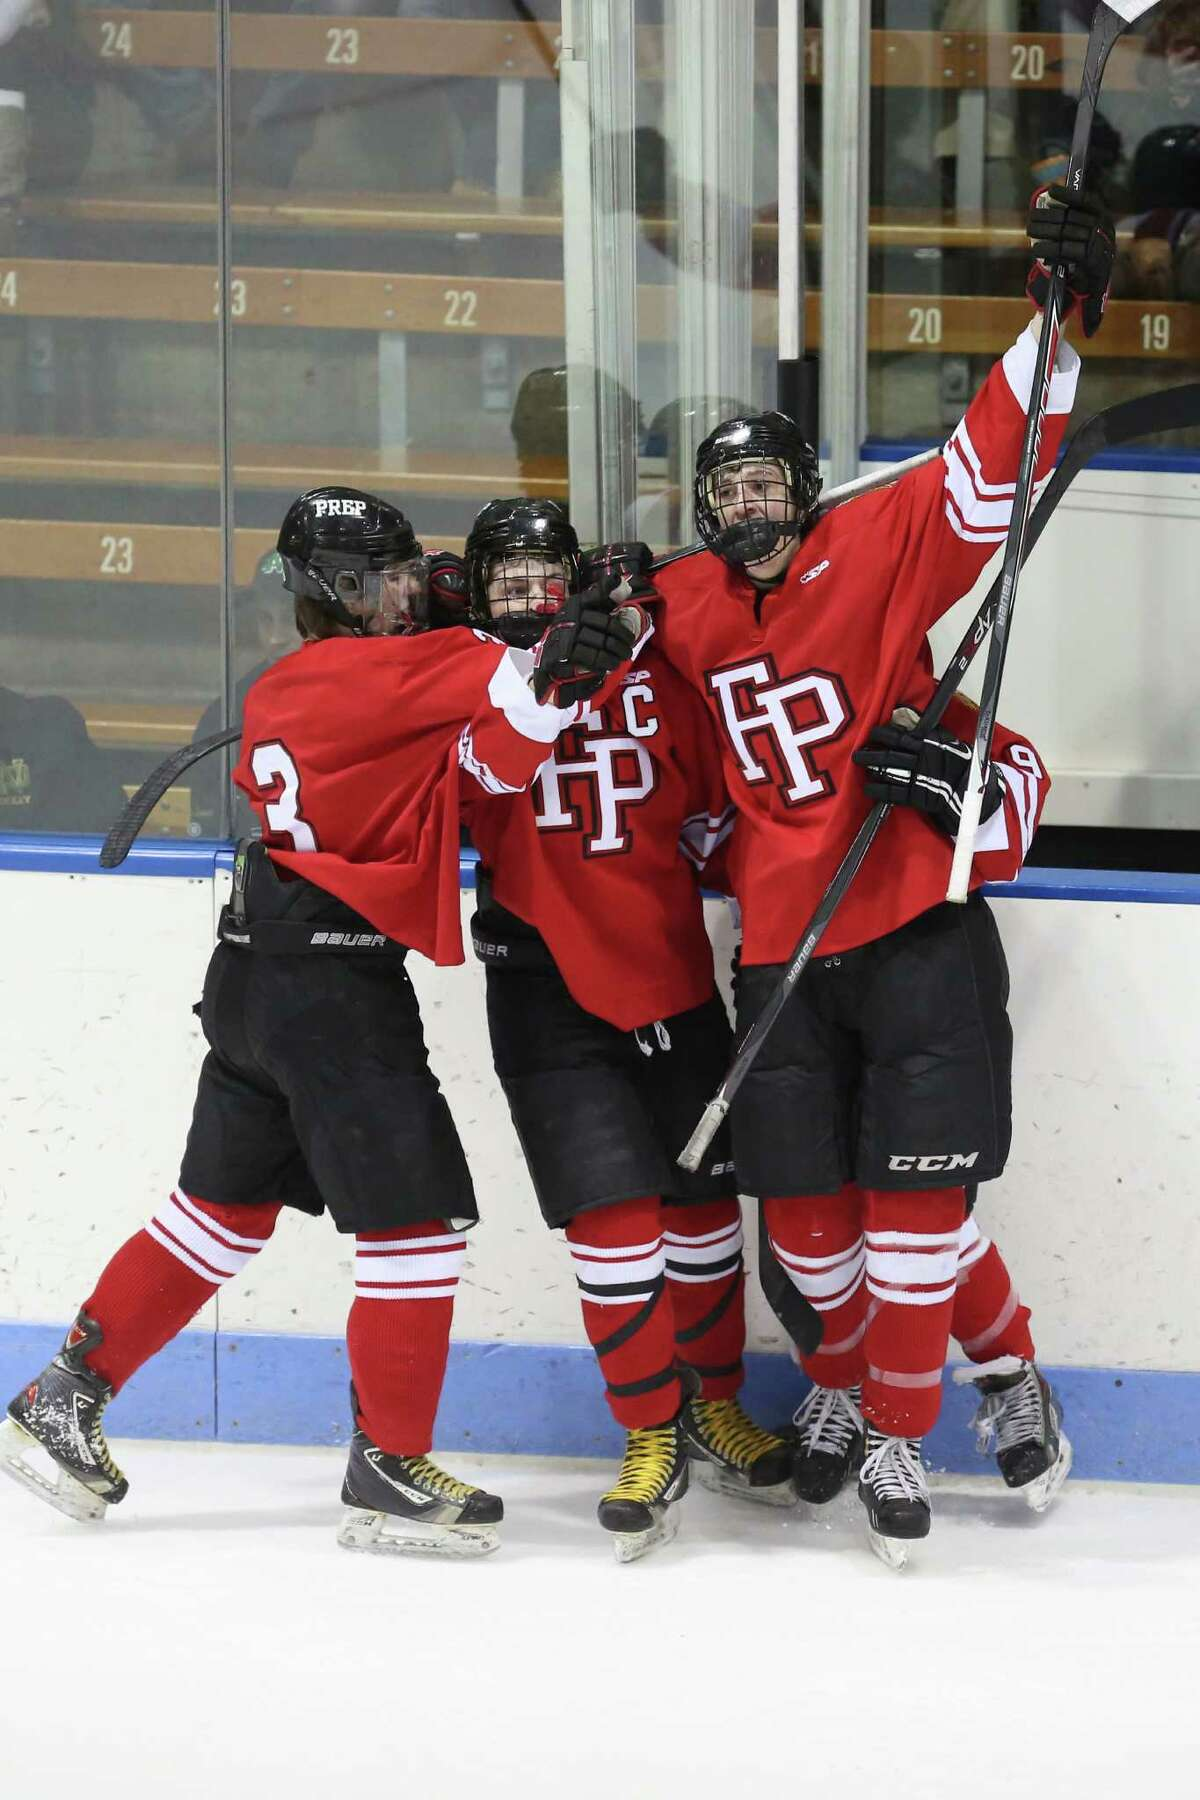 Fairfield Prep celebrate with team mate #22 Dean Lockery after Lockery's first period action goal during Wednesday evening CIAC Division I Semi-Finals against Notre Dame of West Haven.